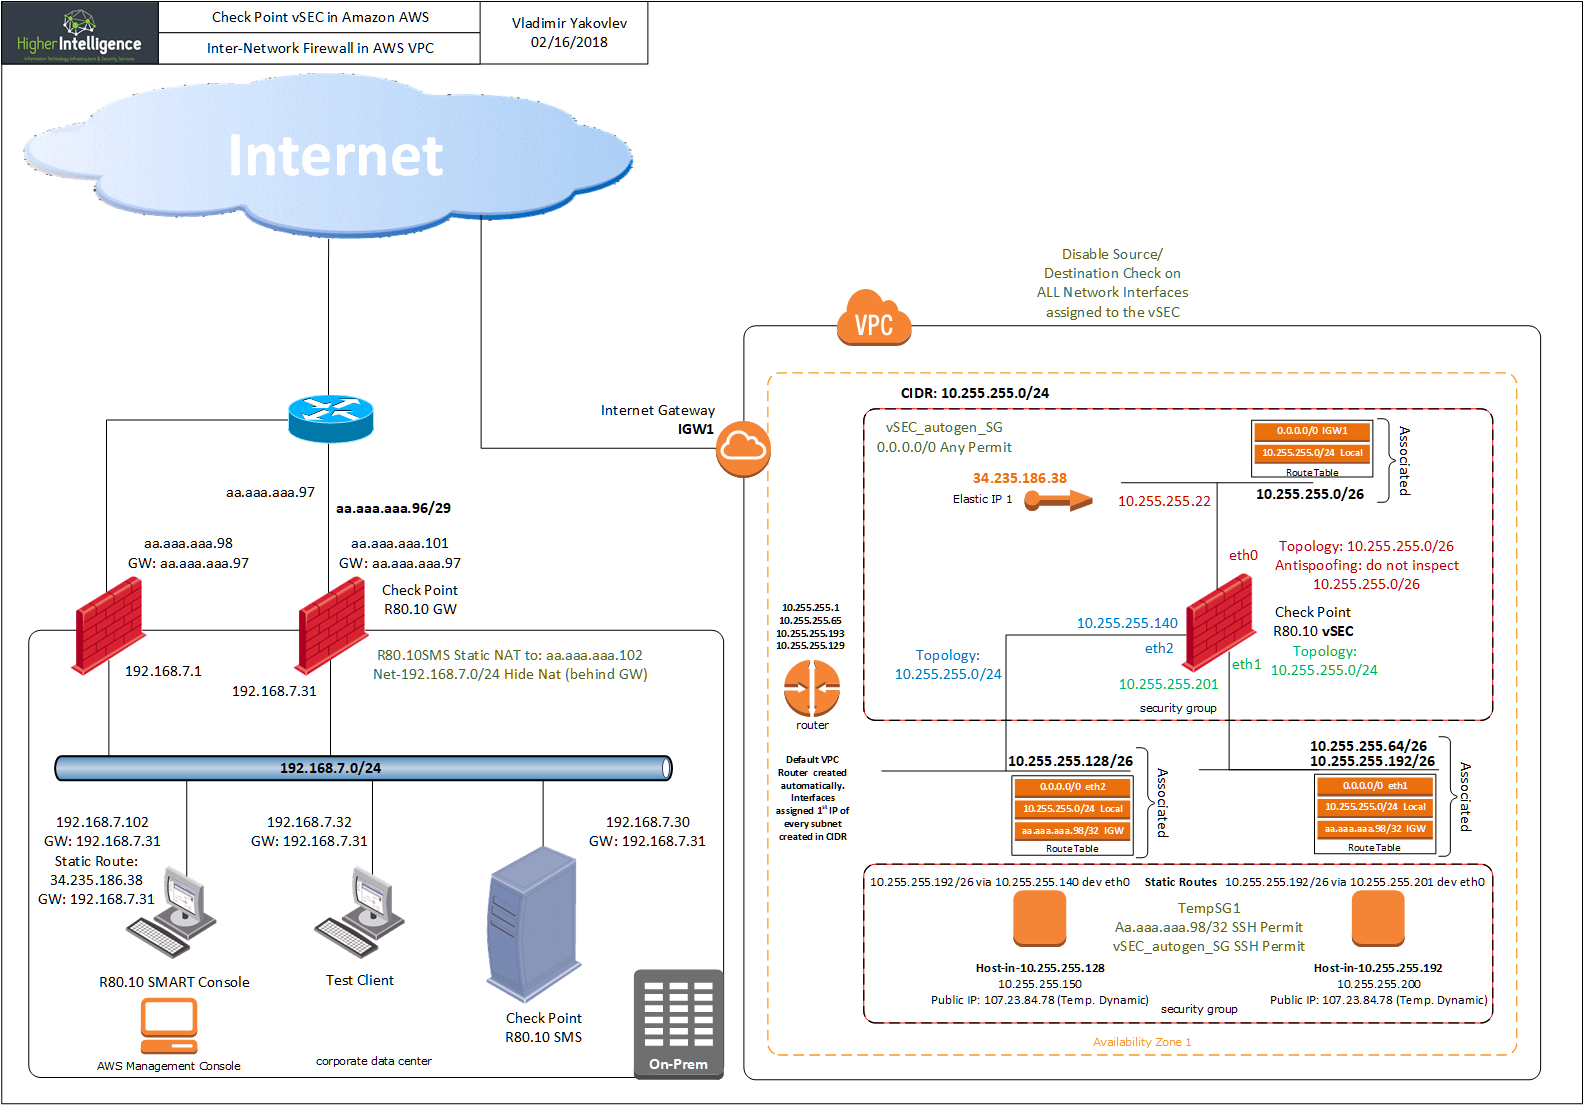 Inter-Network Firewall for AWS VPC